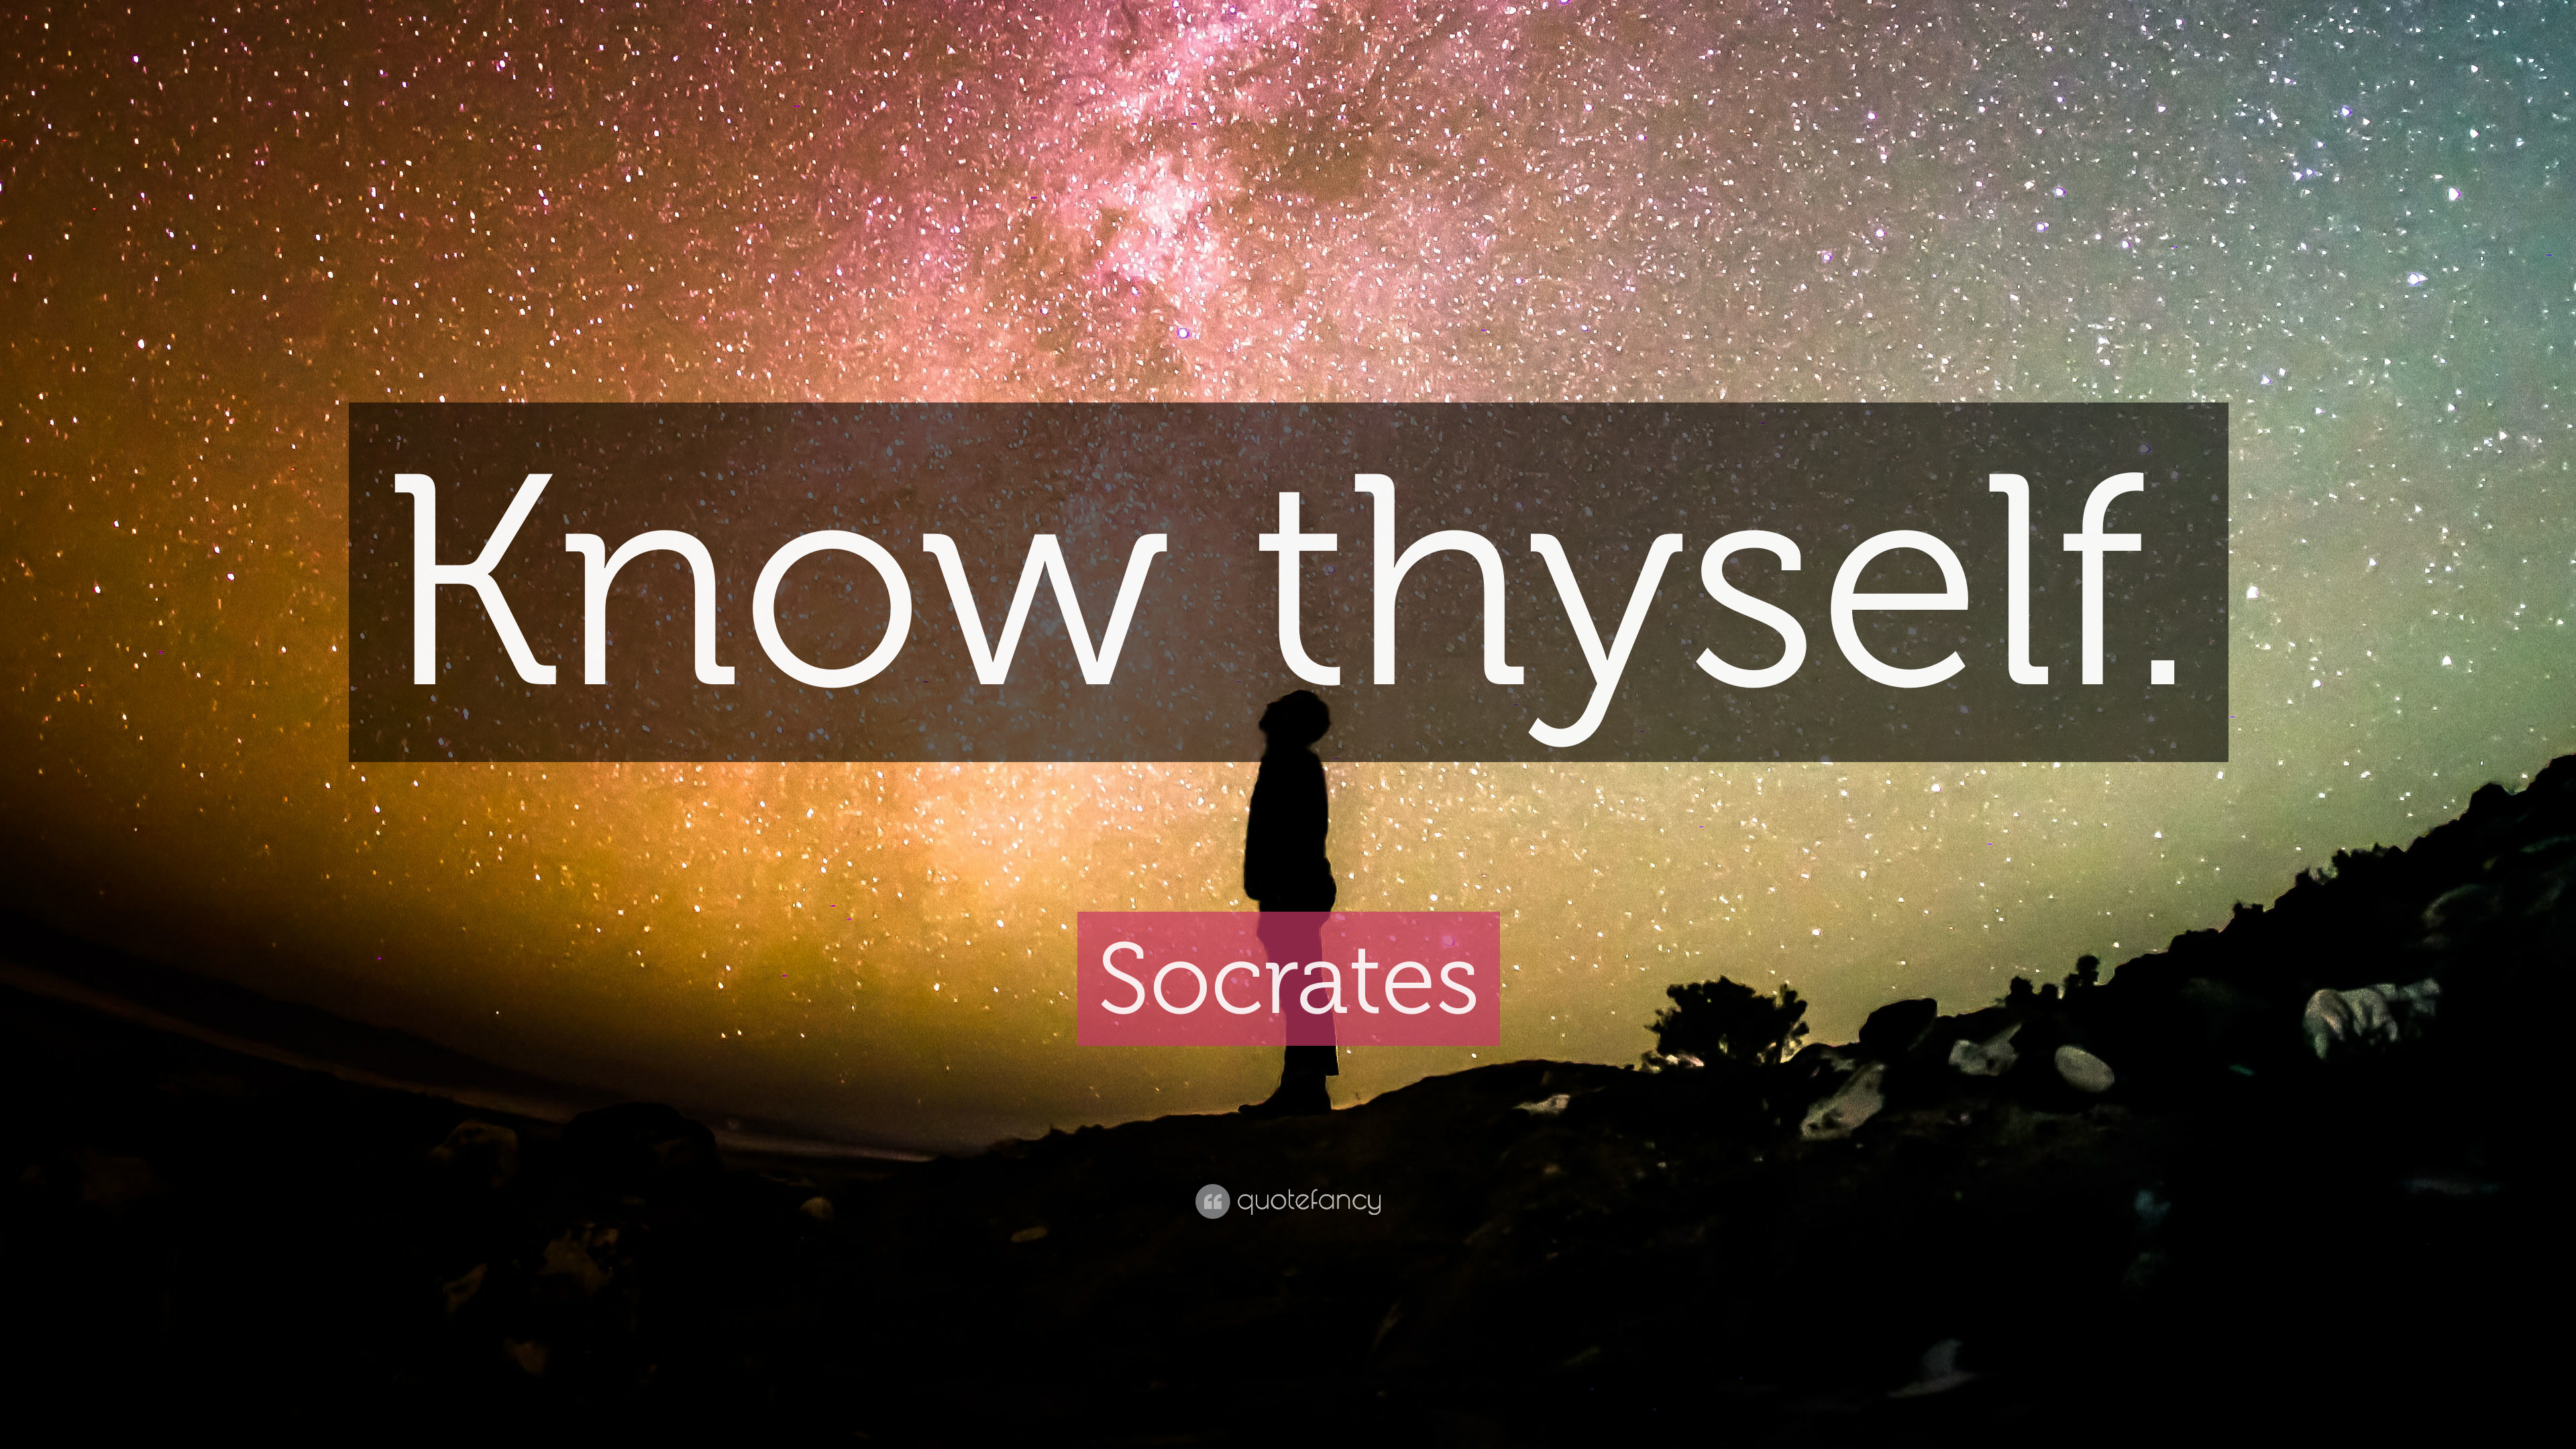 Socrates Quote: Know thyself. (32 wallpapers) - Quotefancy